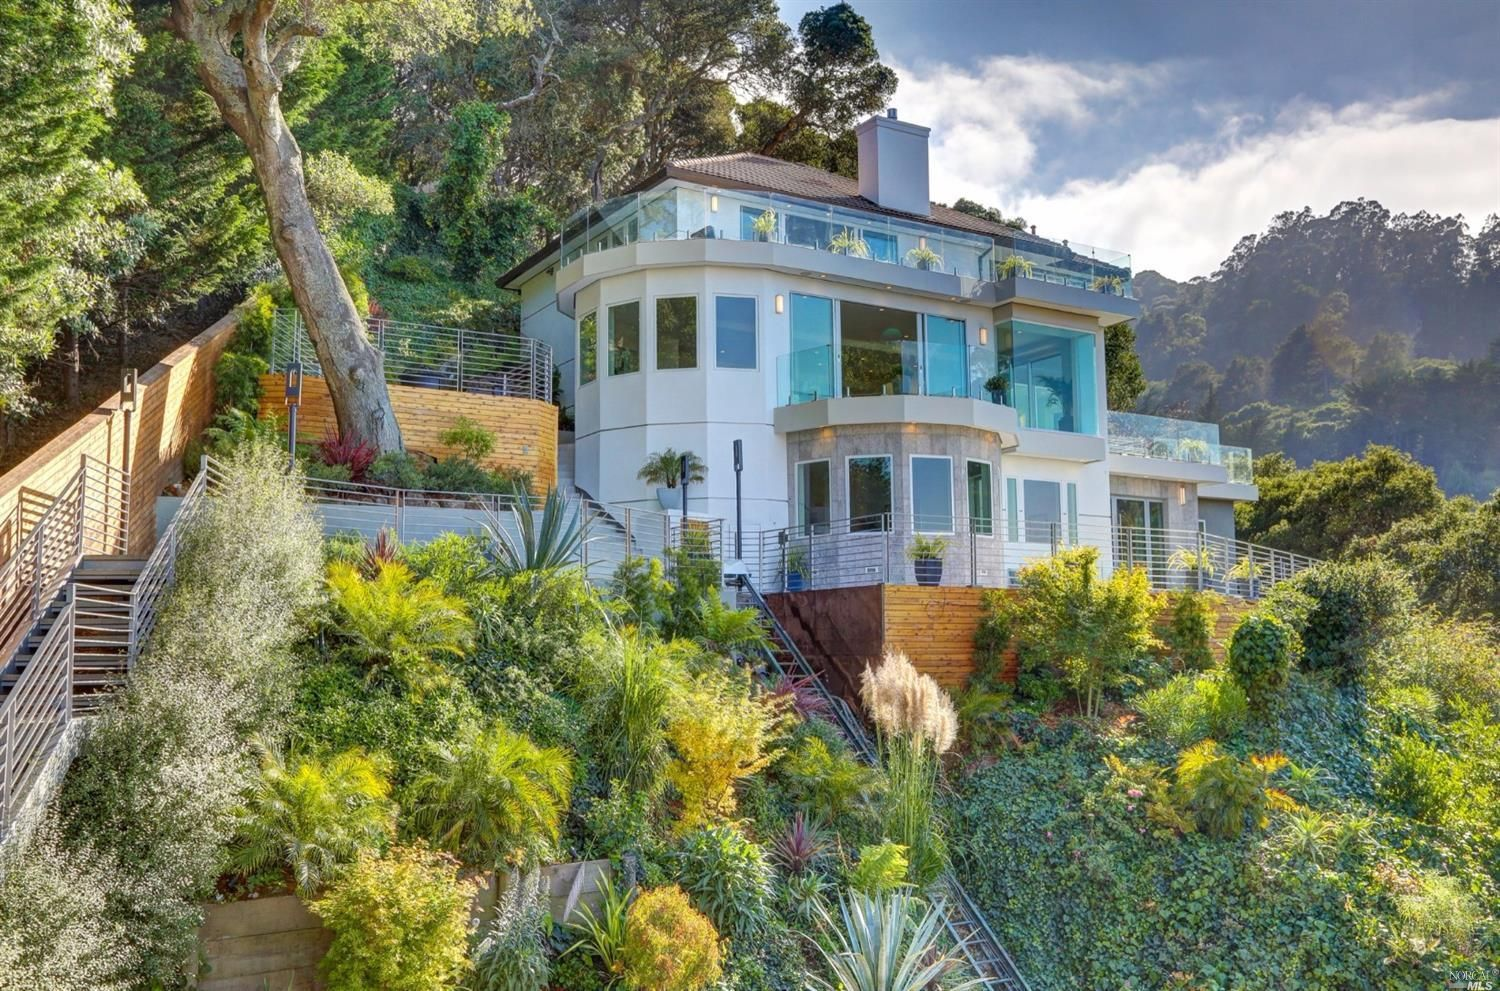 Sausalito homes for sale from your Sausalito realtor & Marin top real estate agent. See more photos here. #luxury #homes #estates #dreams #interiordesign #architecture #lux #lifestyle #ideas #wow #goals